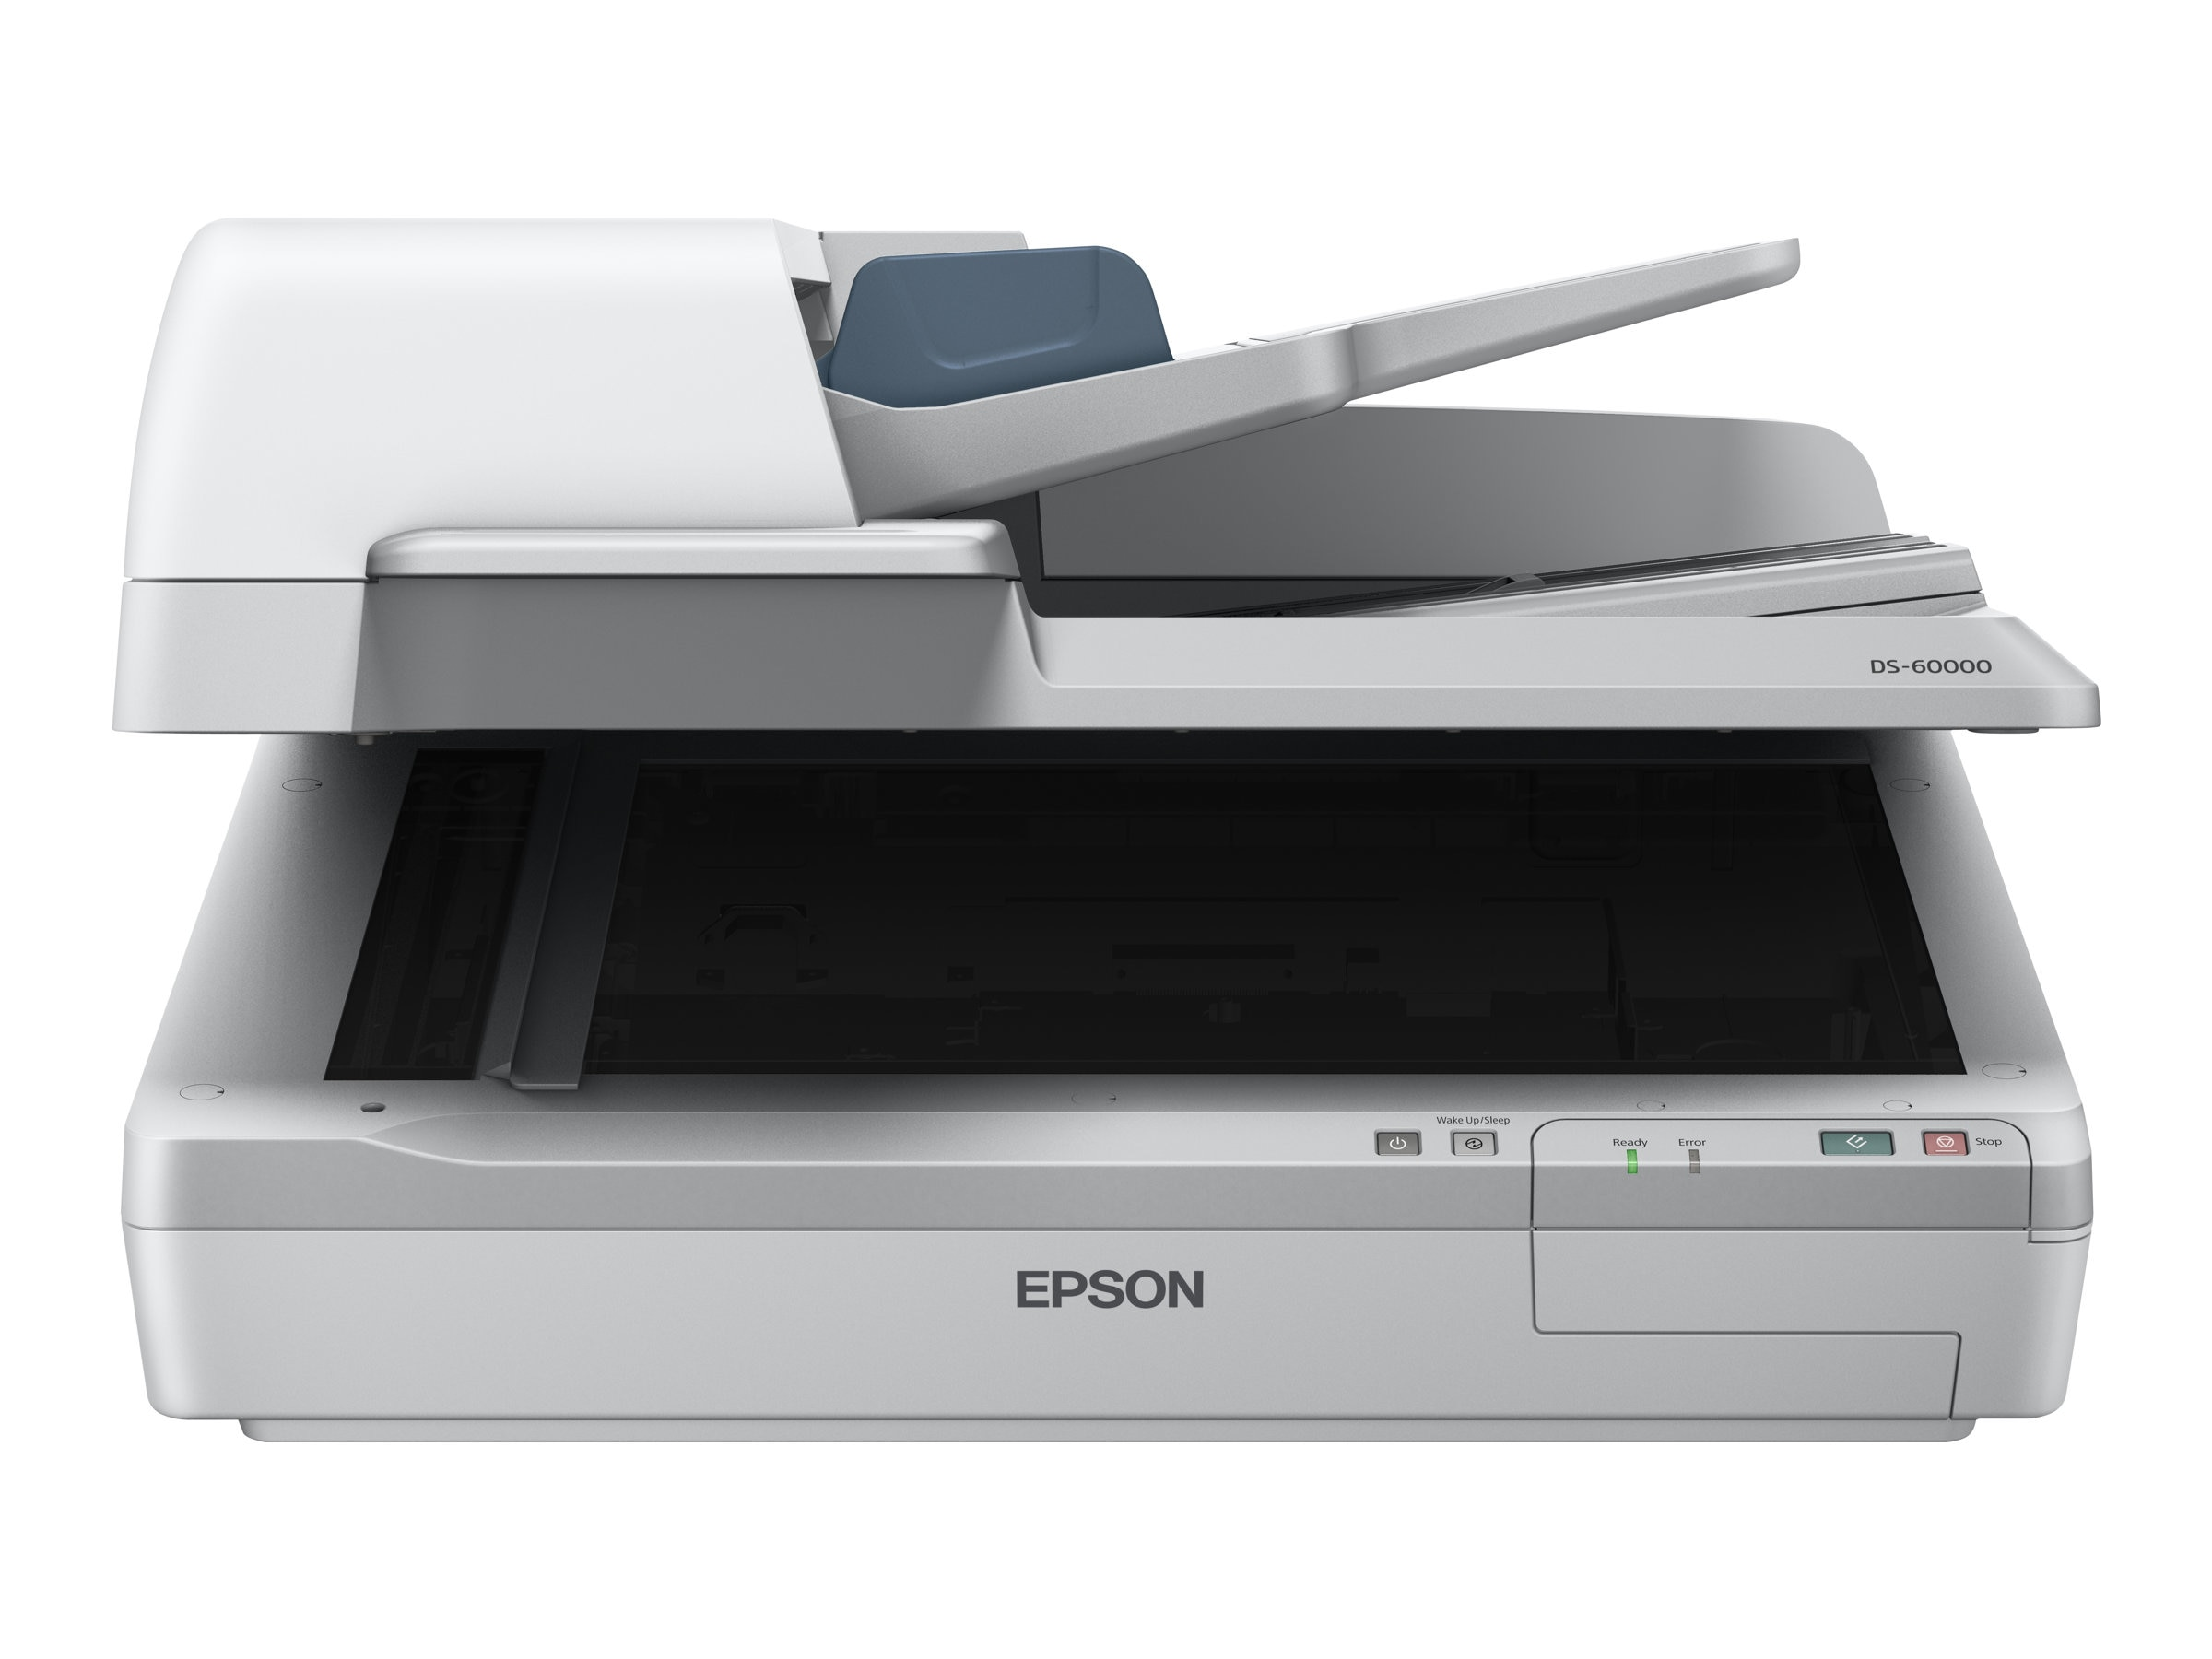 Epson Workforce DS-60000 Scanner - $2899 less instant rebate of $100.00, B11B204221